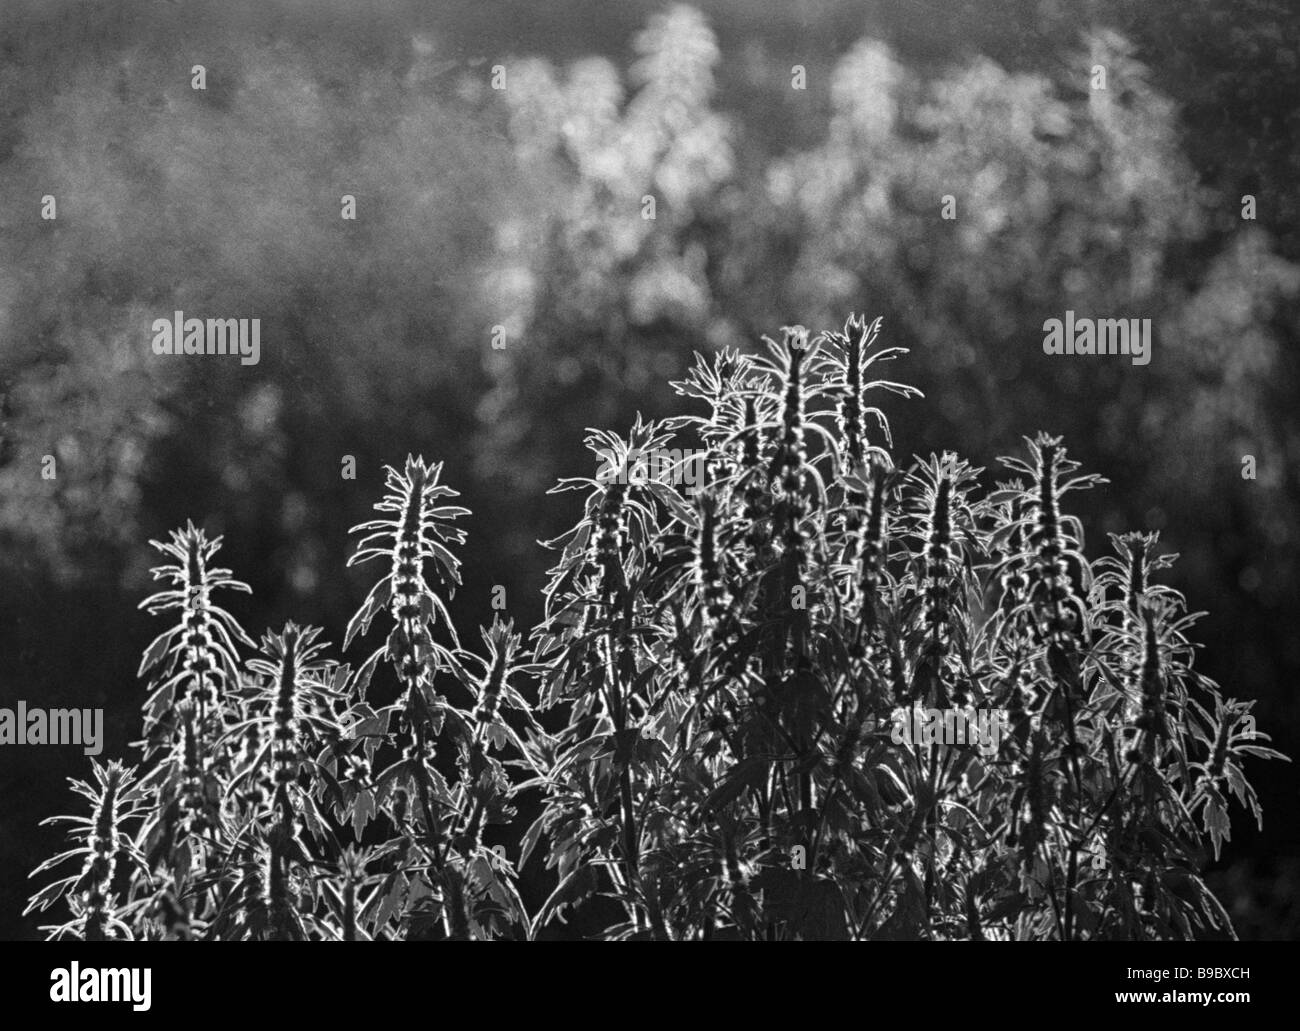 Exotic black and white stock photos images alamy